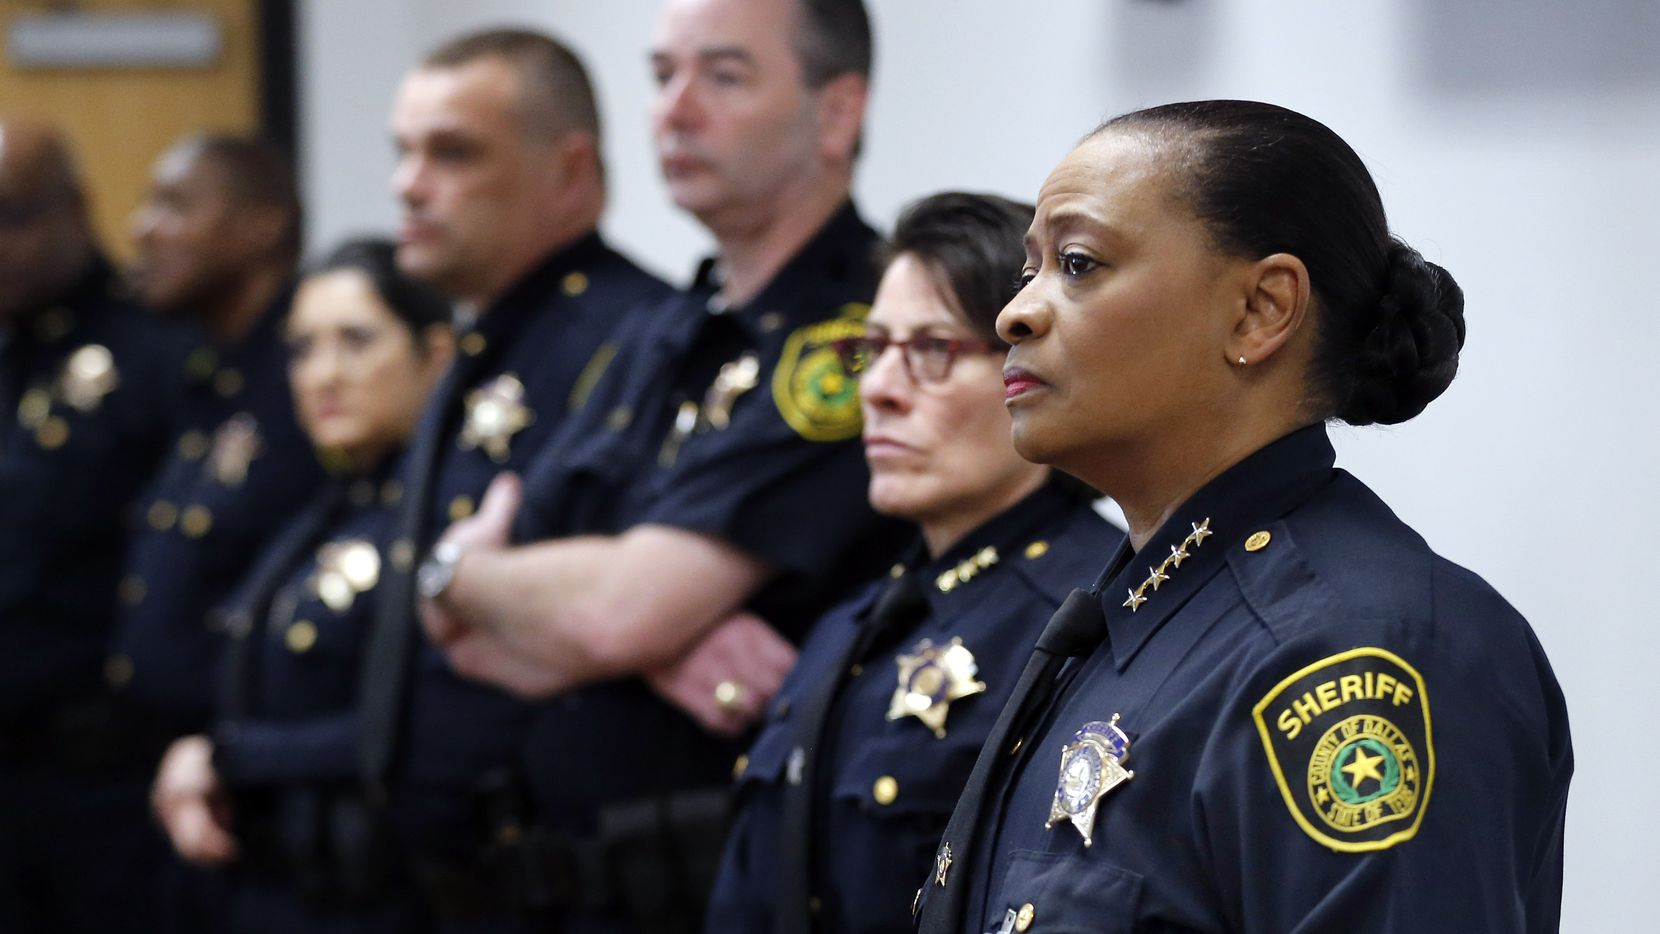 Alongside her deputies, Dallas County Sheriff Marian Brown listens during a press conference. (Tom Fox/The Dallas Morning News)